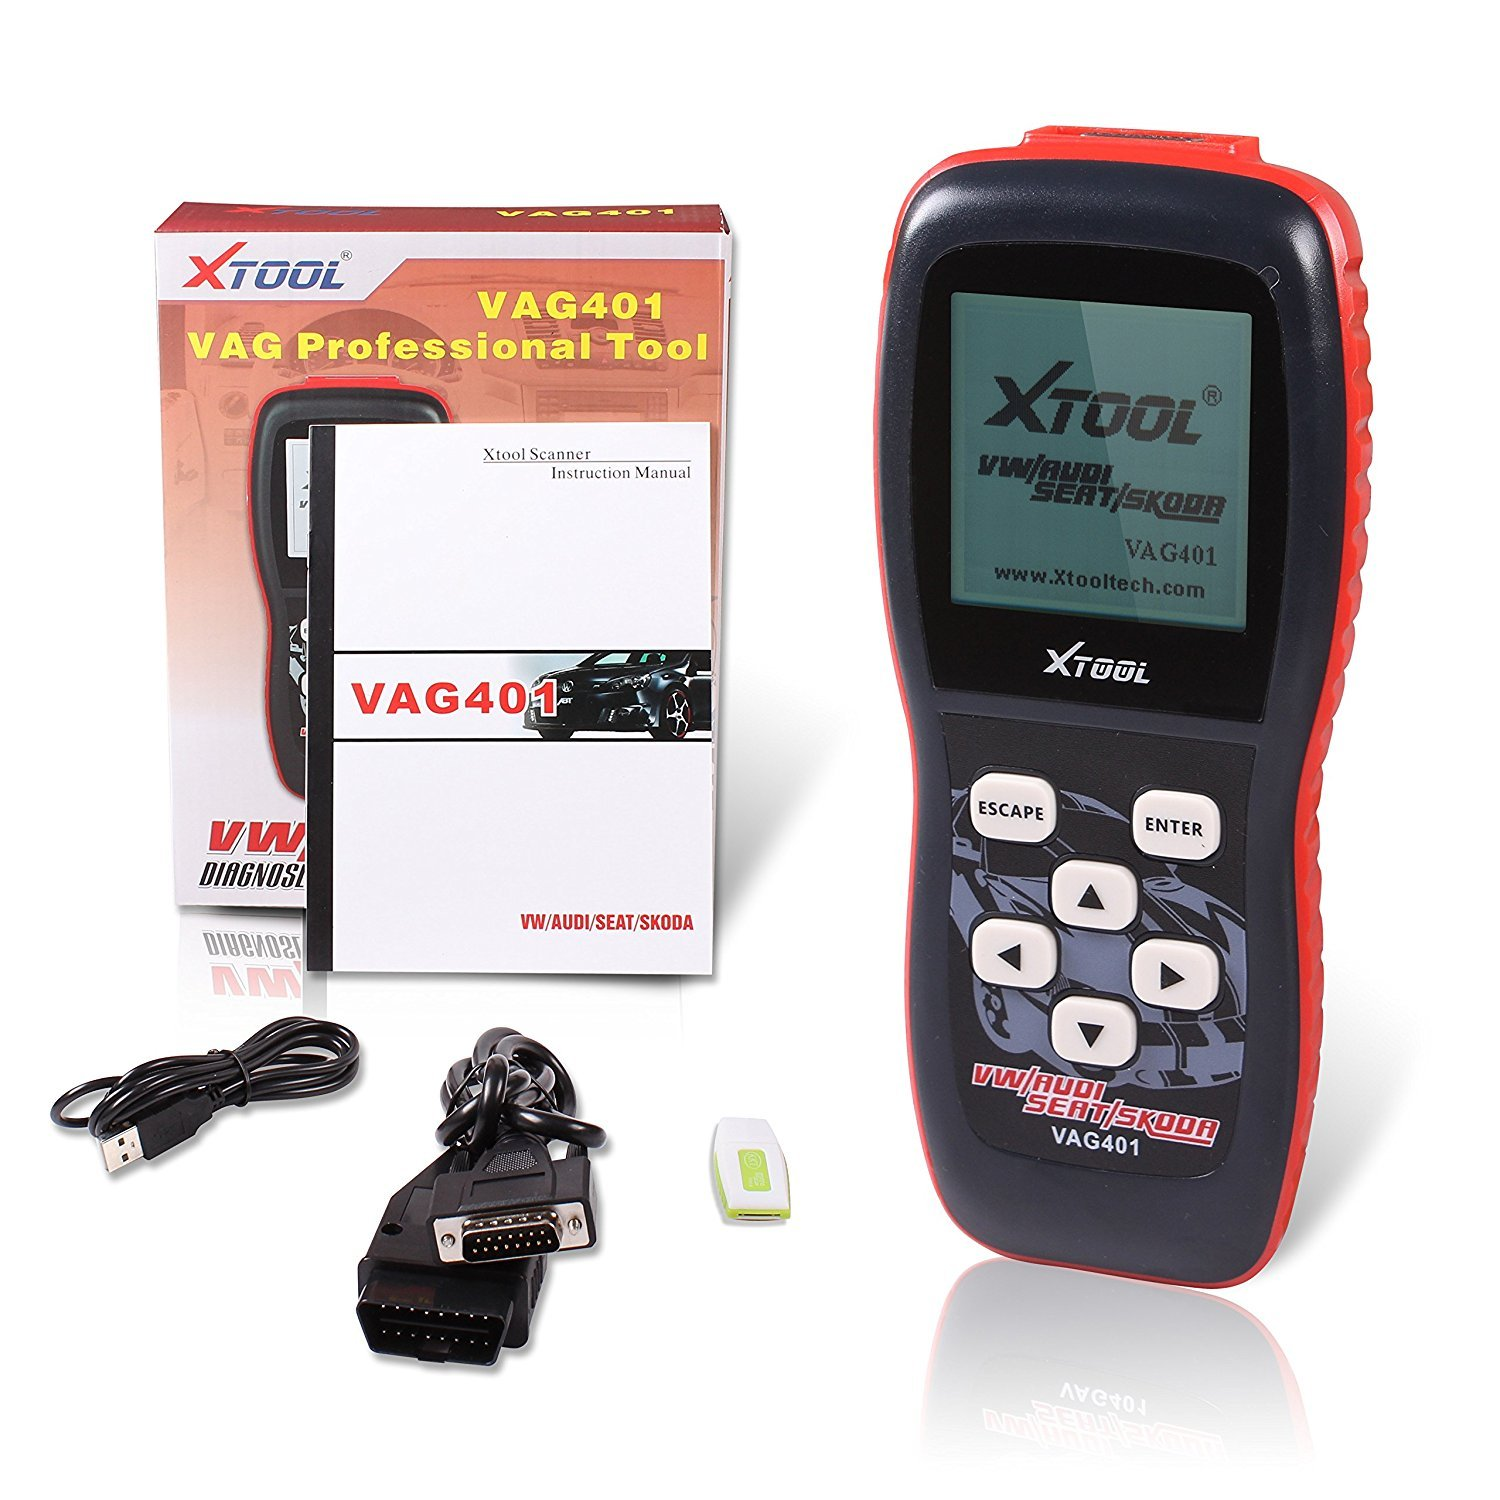 XTOOL VAG401 Live Data OBD2 Auto Scanner for VW, Audi, Seat and Skoda with Oil Reset, Airbag Reset and Actuation Test Function by XTOOL (Image #4)